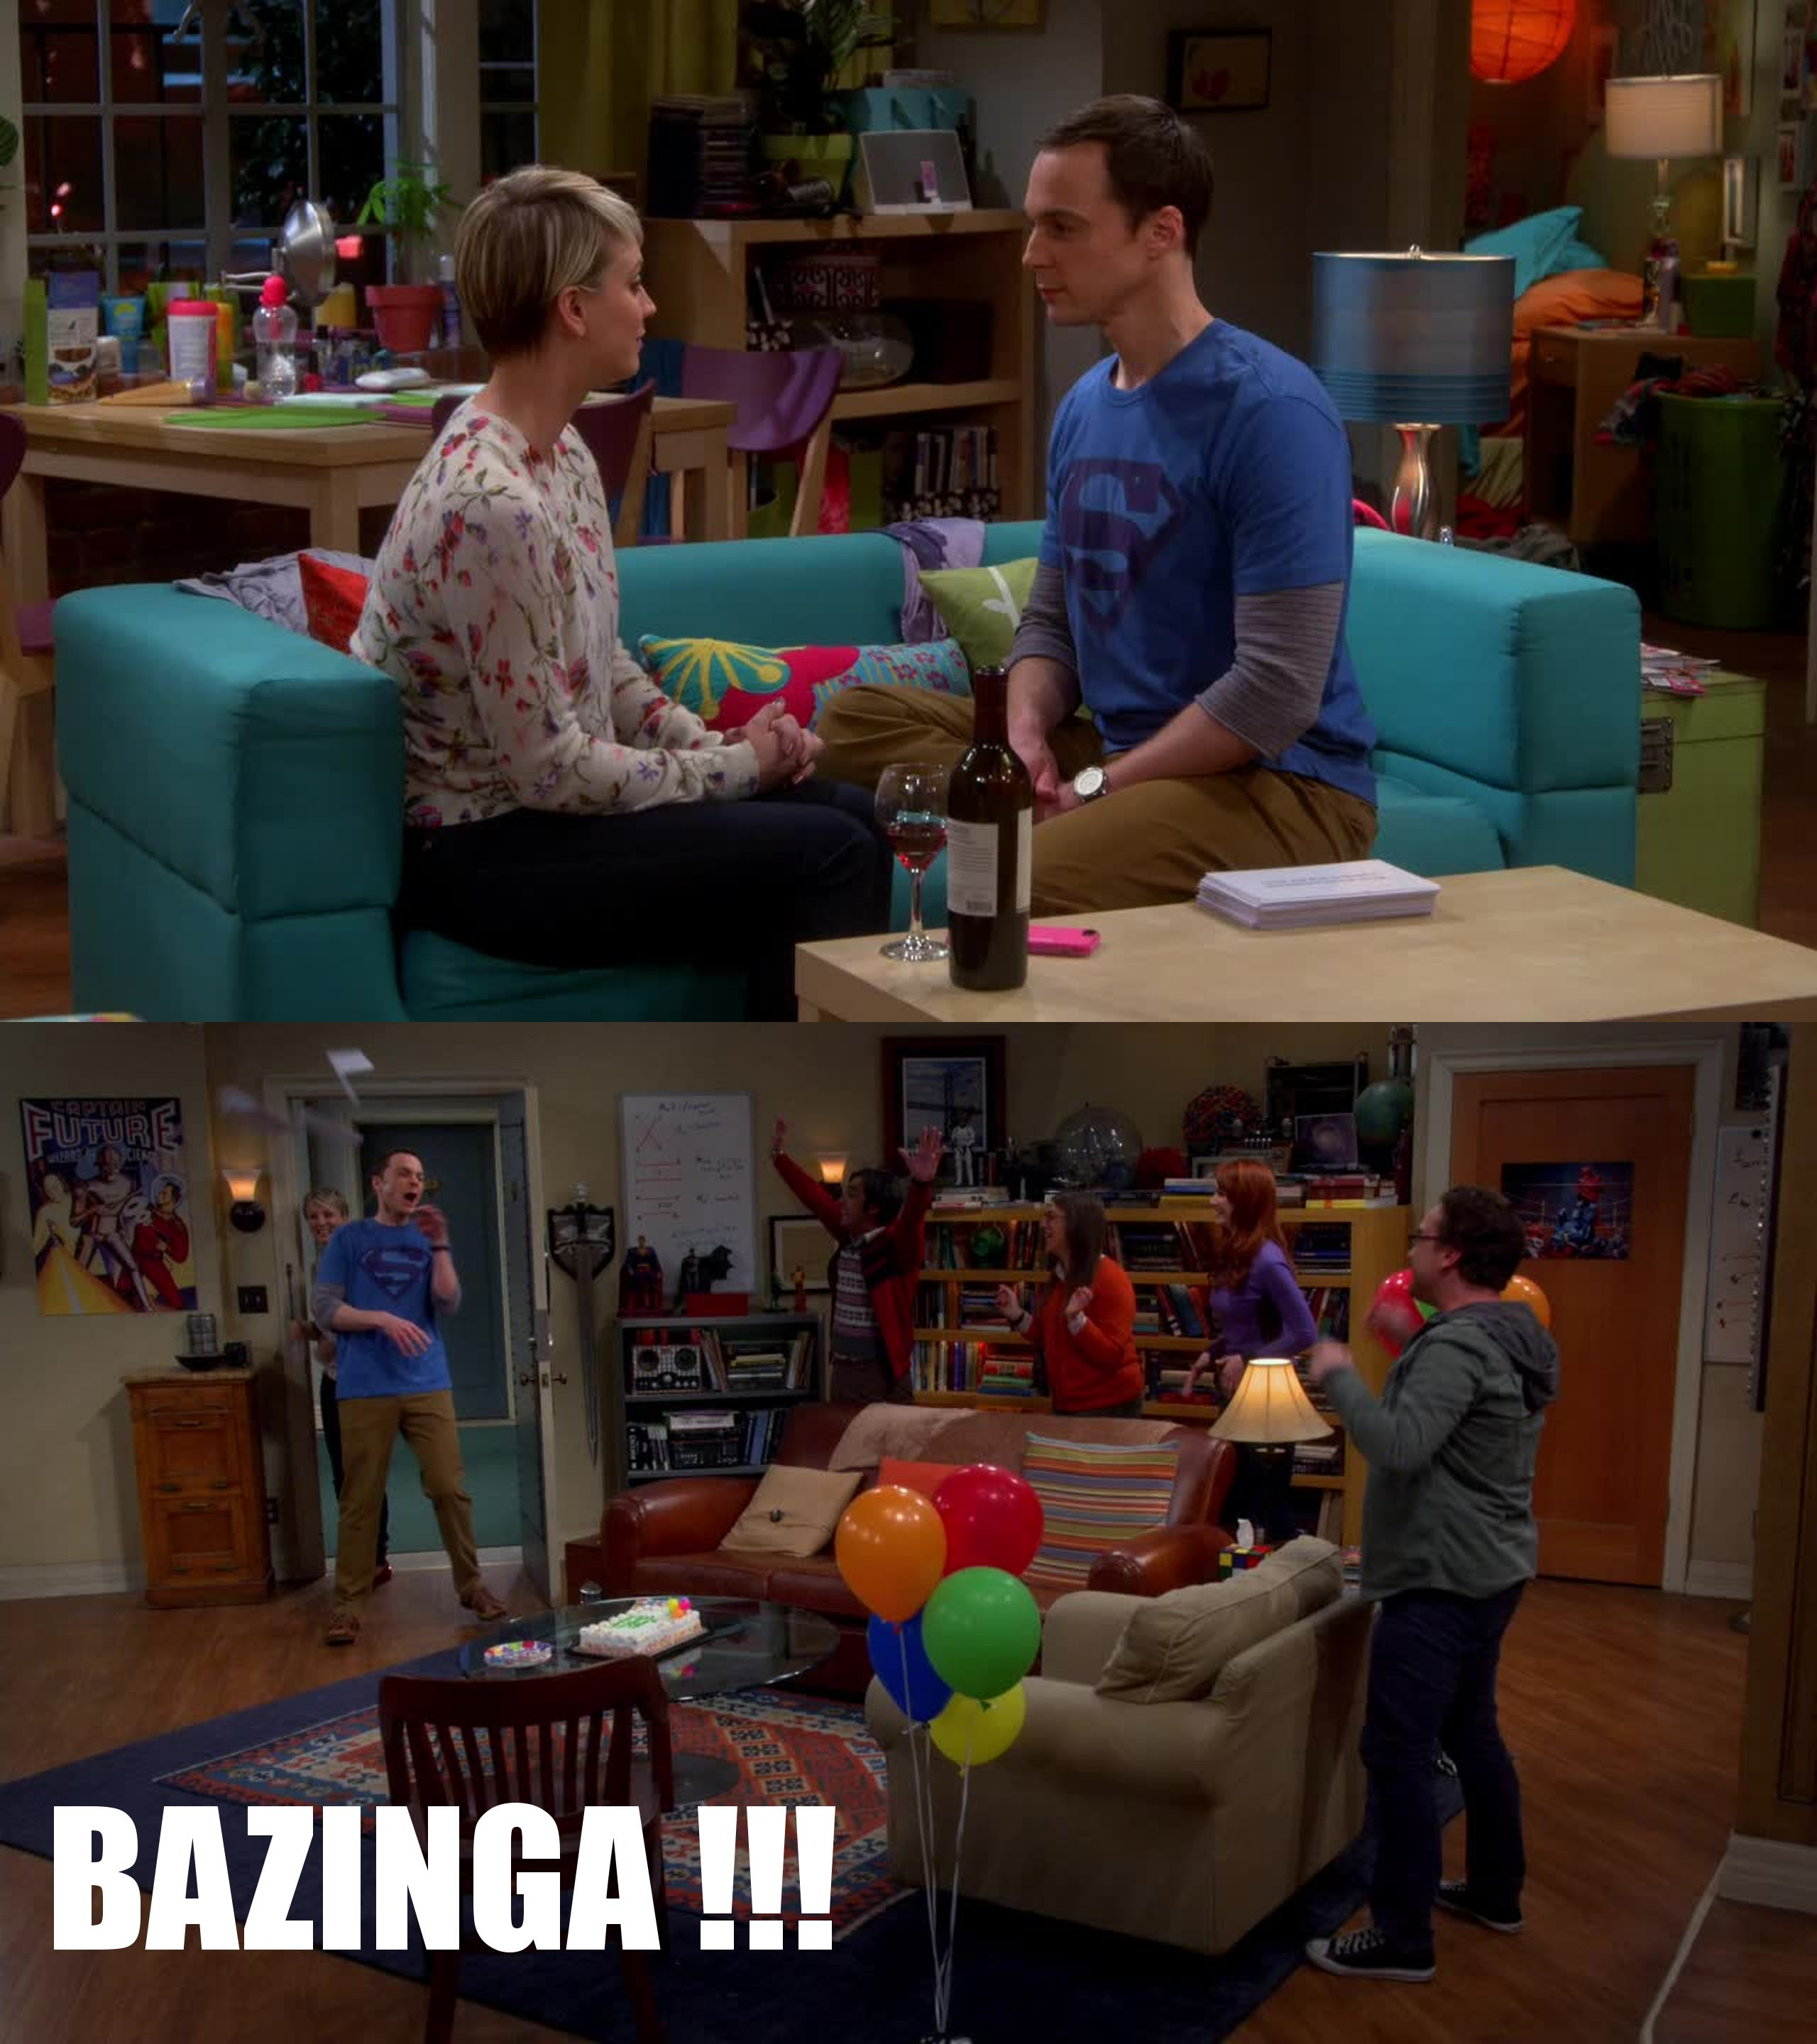 this episode is one of the best of big bang theory. It is so funny !  Penny and Sheldon make a perfect friendship